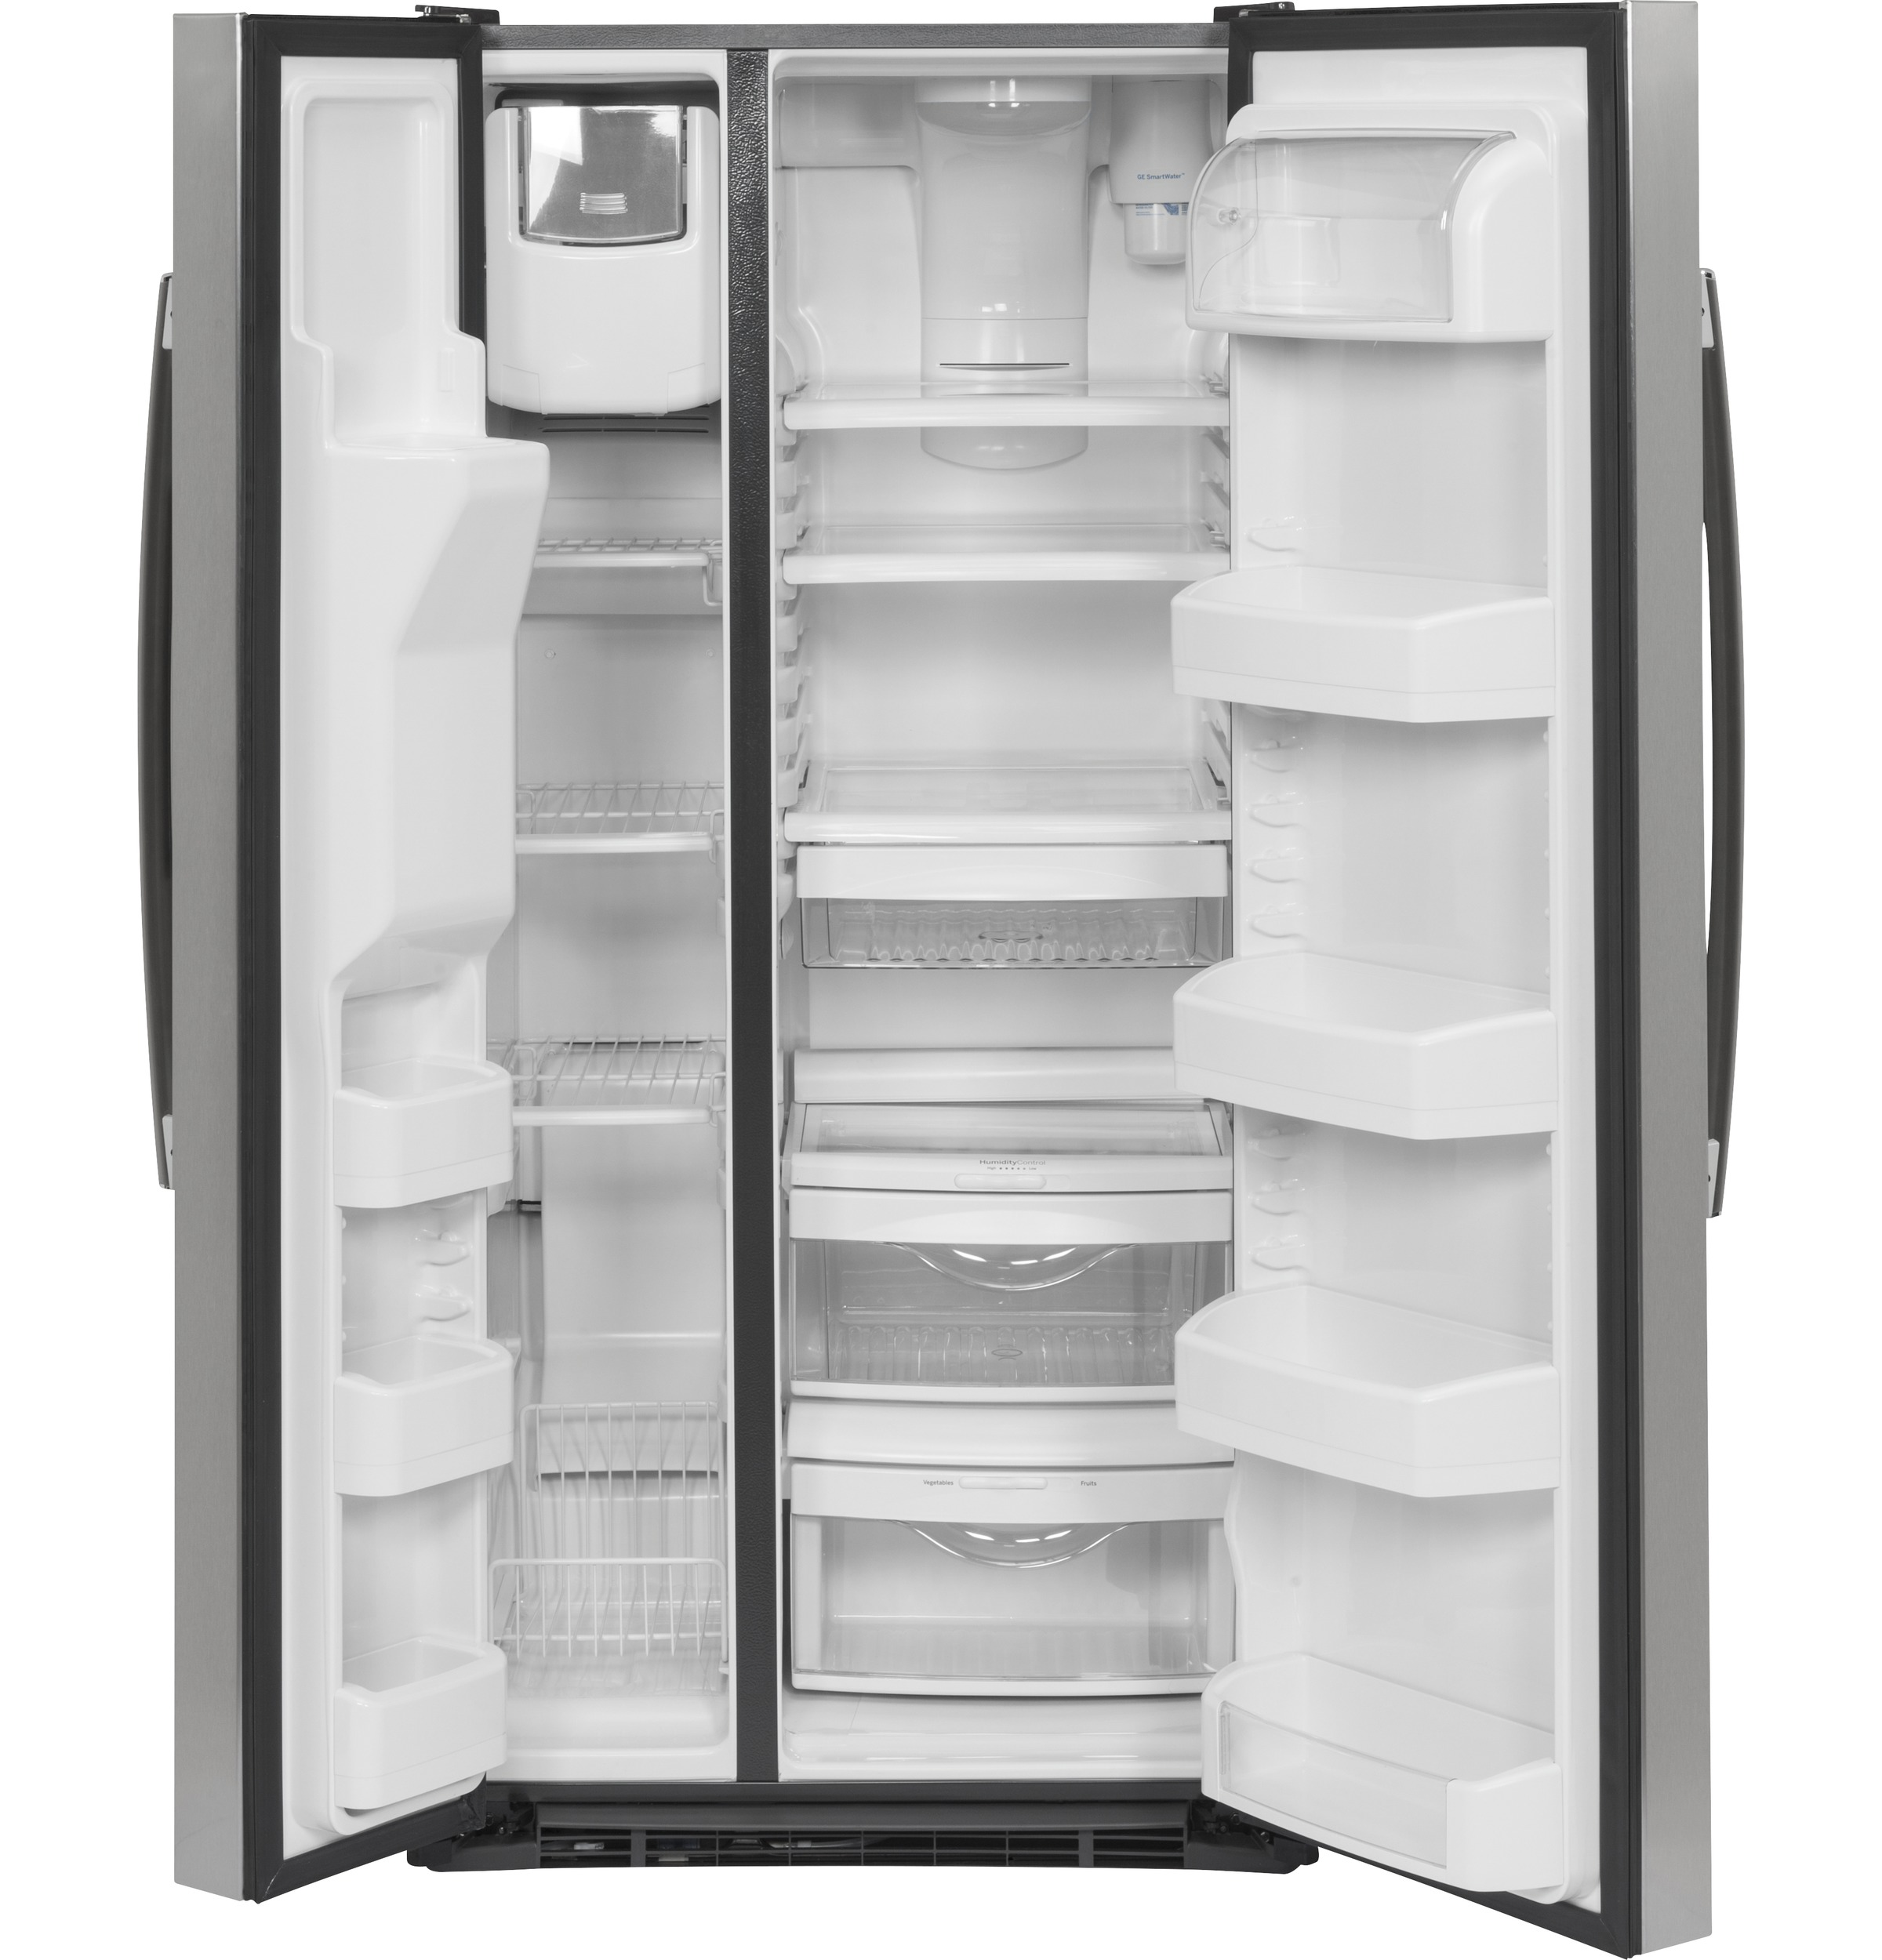 Ge 232 cu ft side by side refrigerator gss23gskss ge appliances product image product image product image product image publicscrutiny Gallery